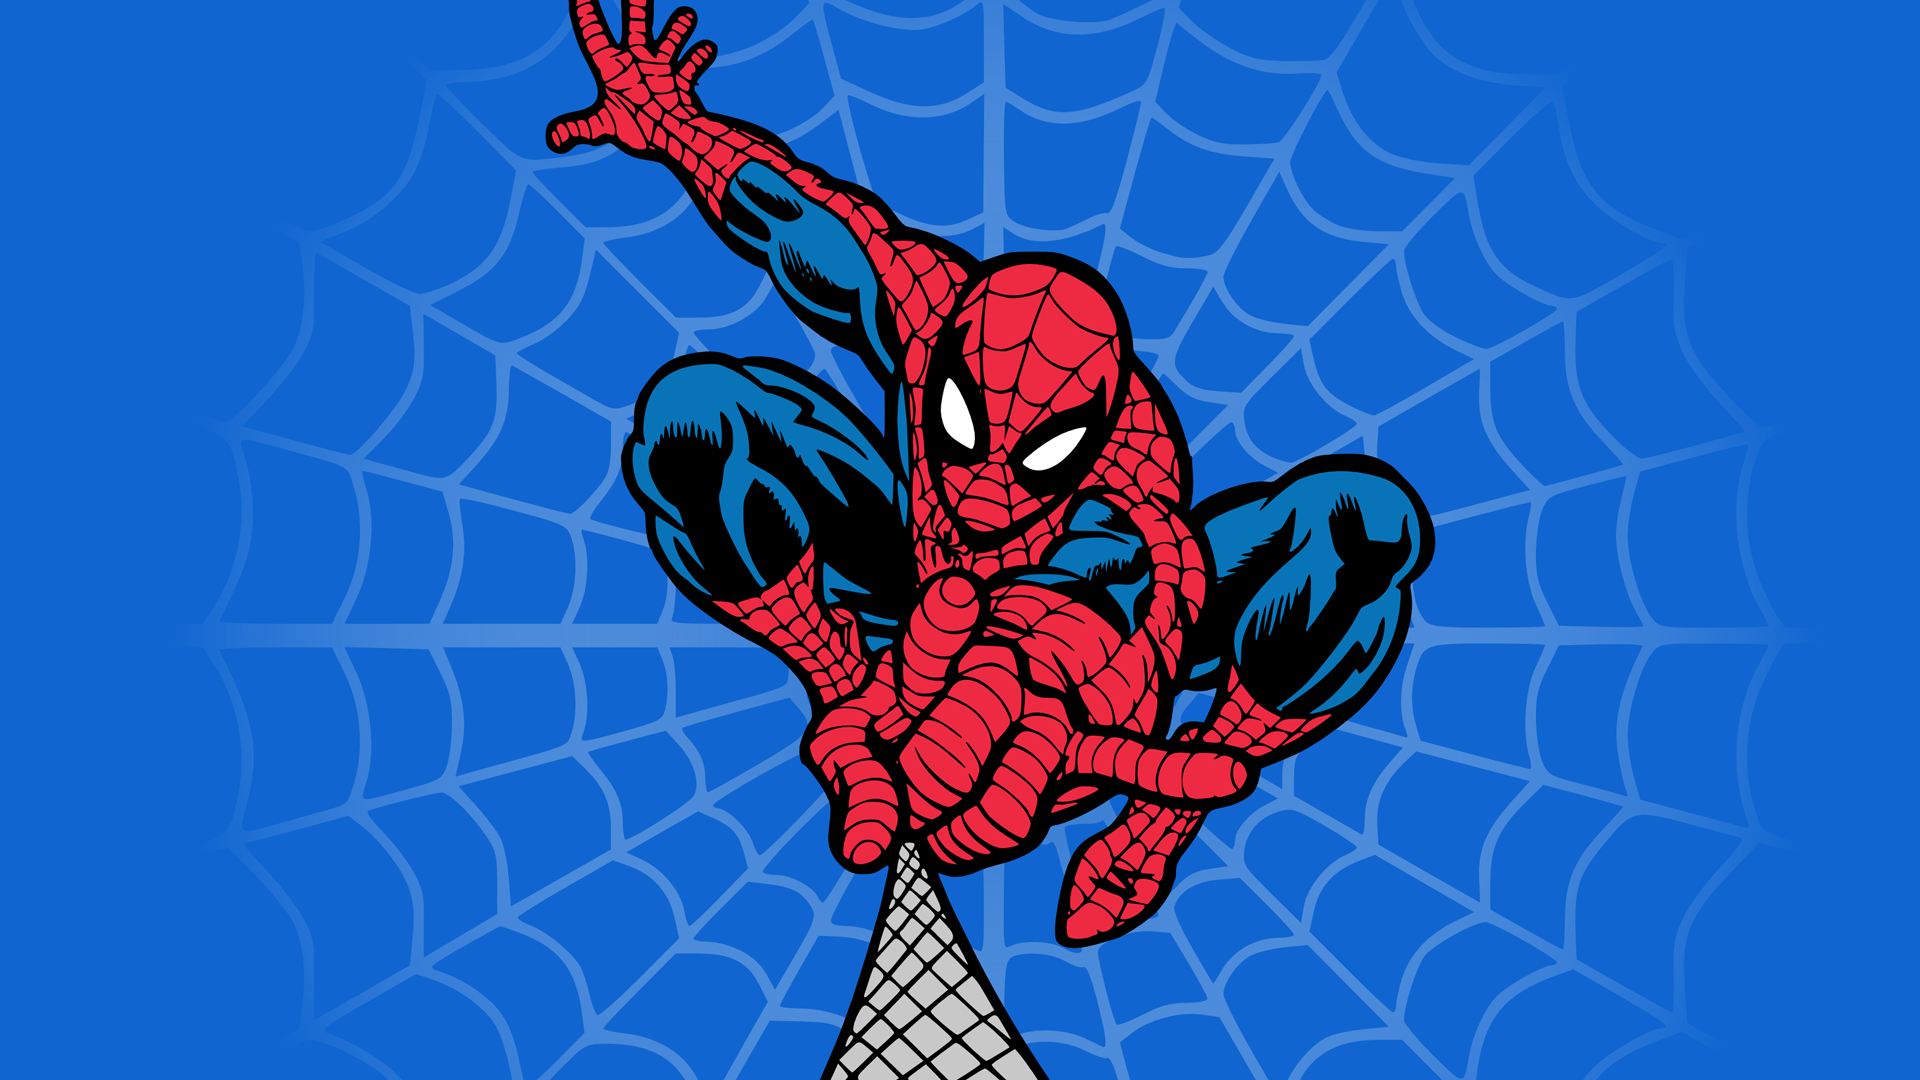 HD Spiderman Wallpapers. ← Hd Spiderman Wallpaper